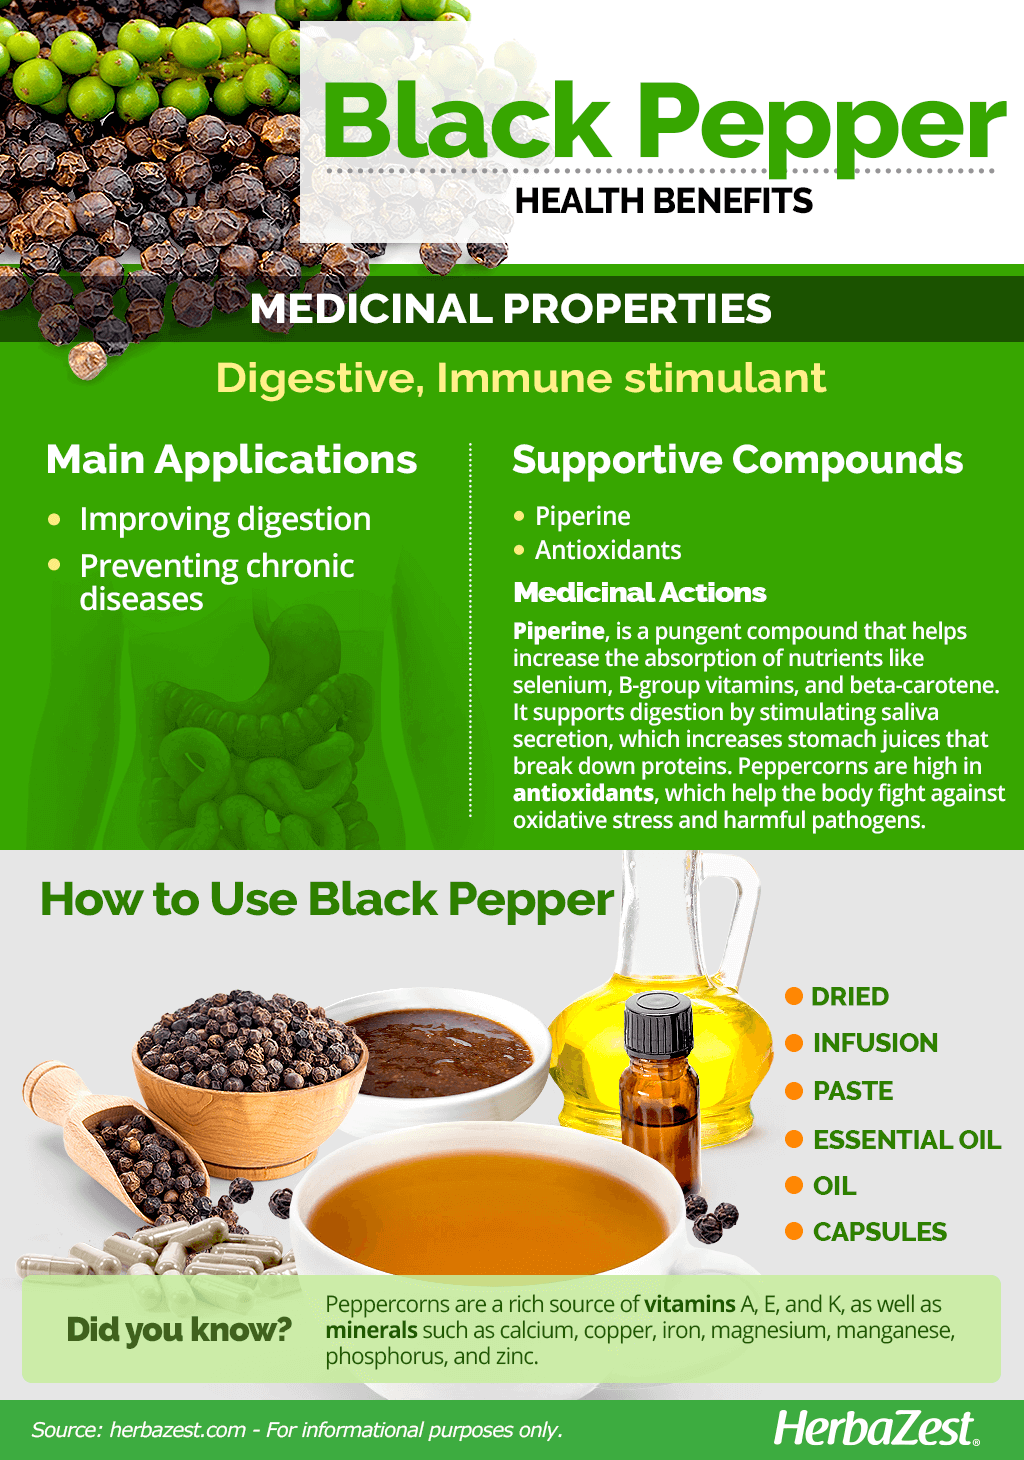 All About Black Pepper